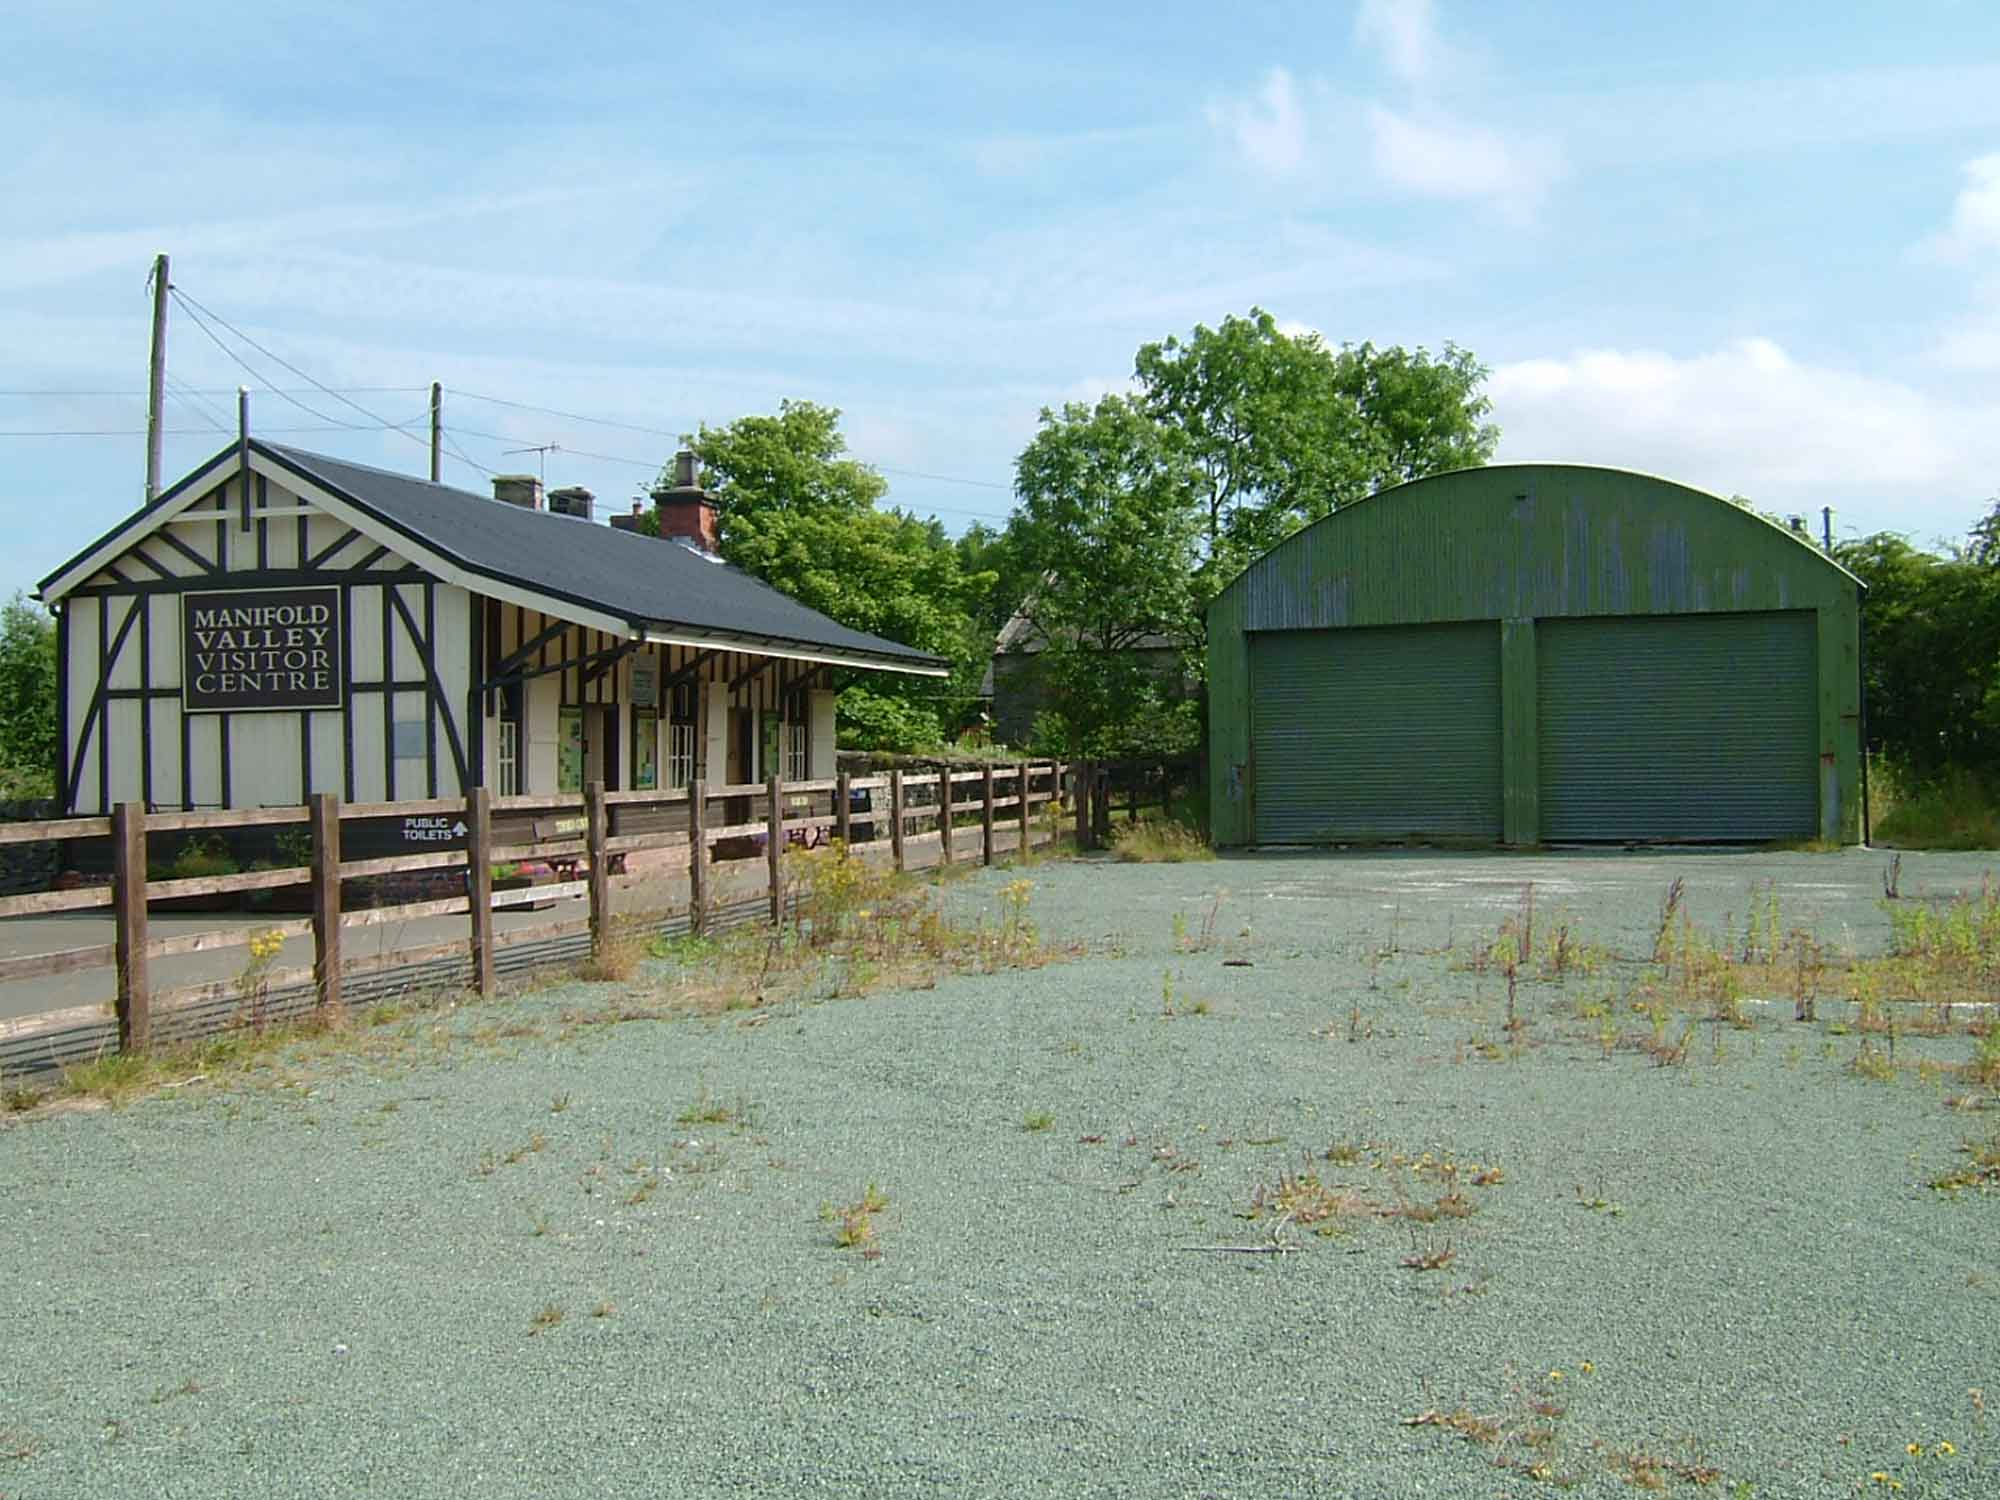 old photograph of manifold valley visitor centre